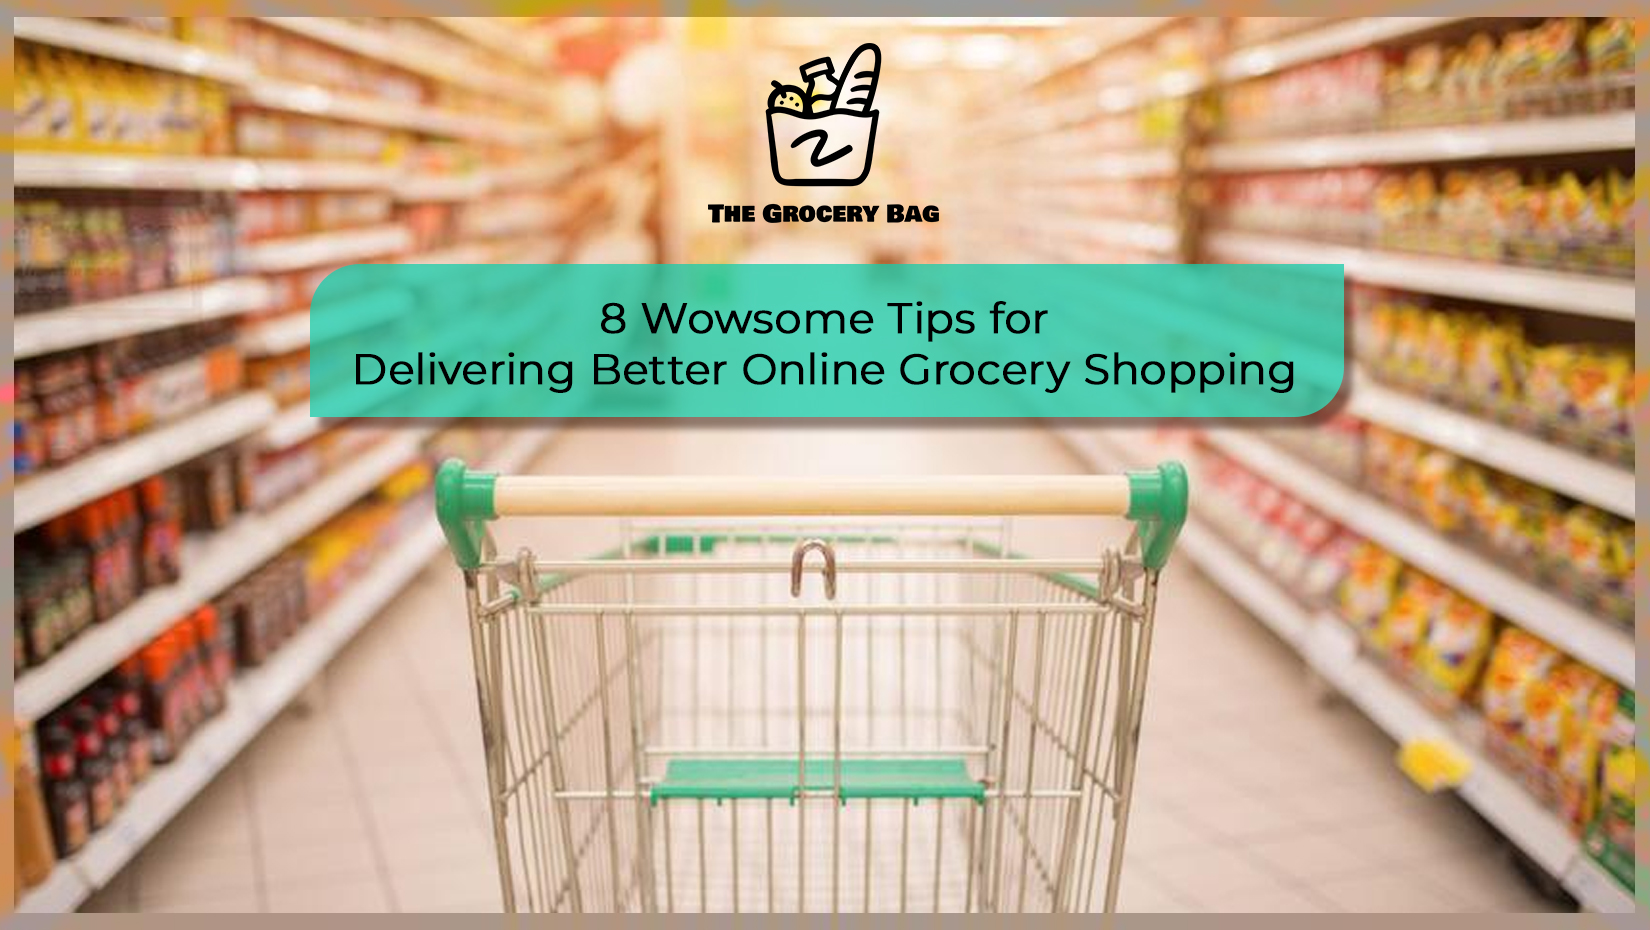 8 Wowsome Tips for Delivering Better Online Grocery Shopping